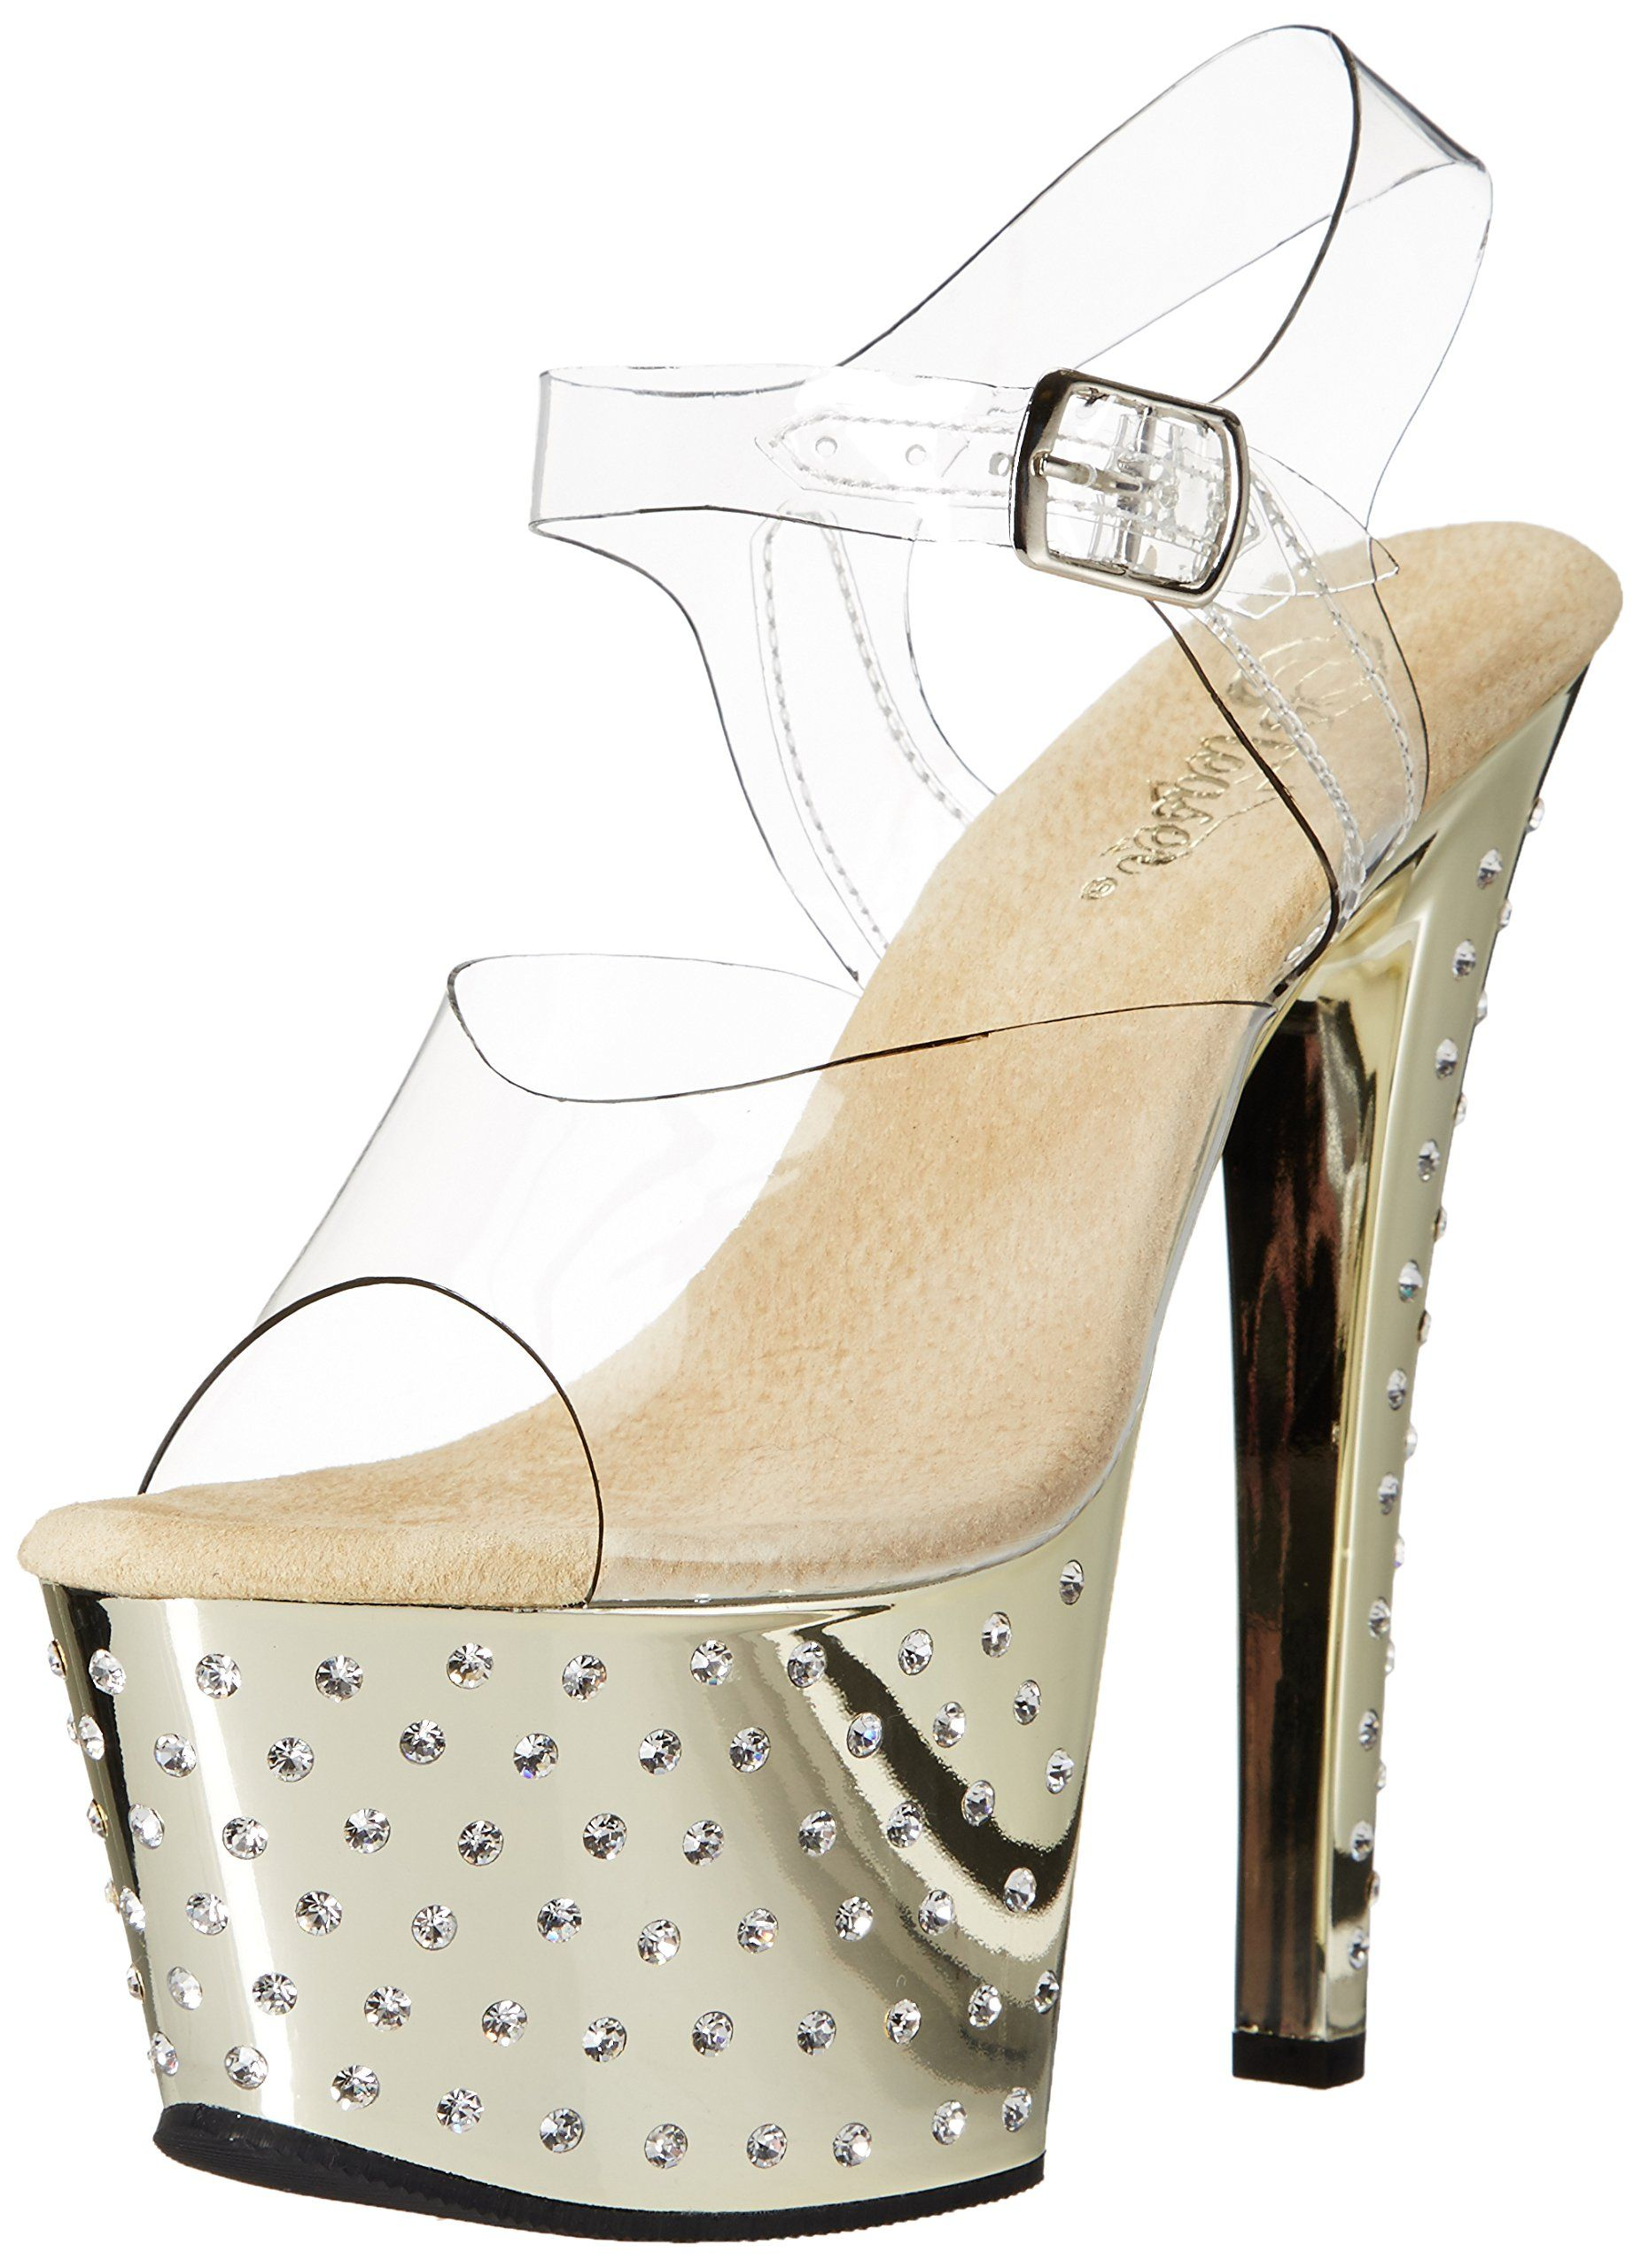 Pleaser Women's Stdus708/C/Gch Platform Dress Sandal, Clear/Gold Chrome, 8 M US. Dancer sandal featuring metallic platform and heel with sparkling embellishment. Clear upper. Ankle strap with buckle closure.